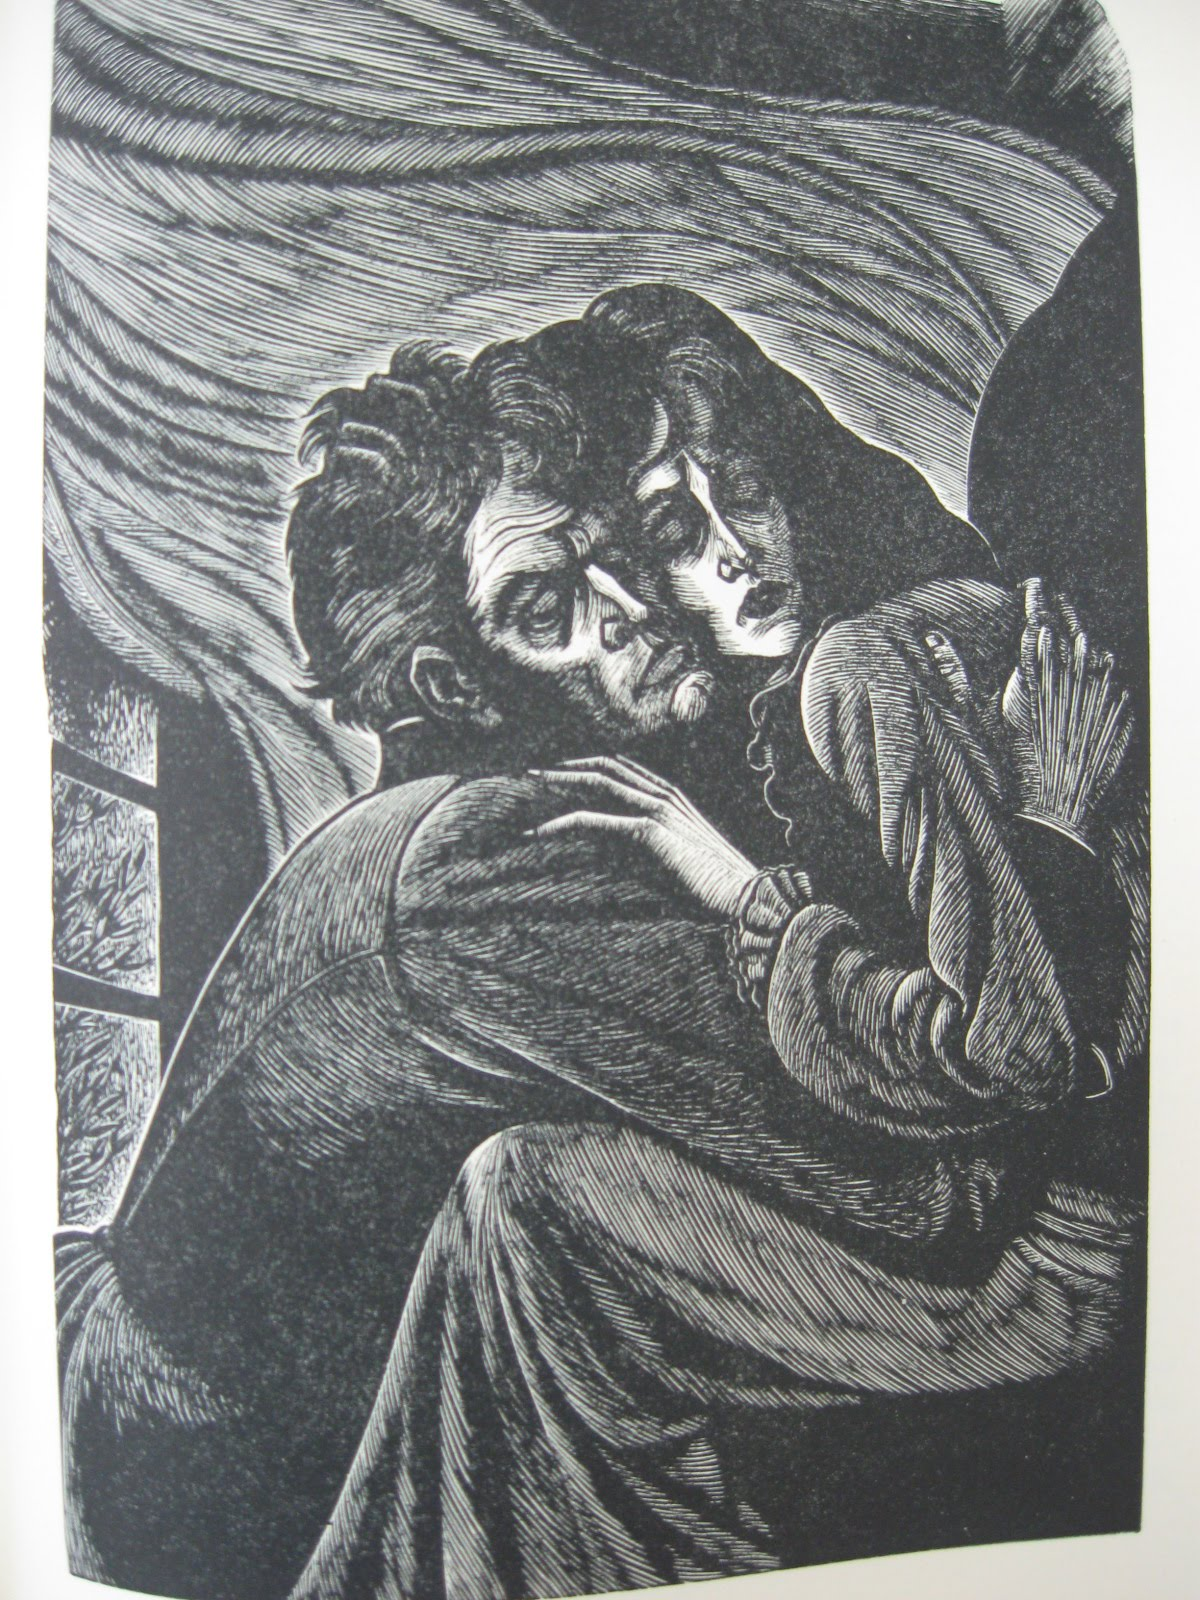 feminism in wuthering heights Romanticism in emily bronte's wuthering heights wuthering heights, written by emily brontë, can be classified as a romantic novel, because it contains many tenets of romanticism romanticism was the initial literary reaction to changes in society caused by the industrial revolution: it was an attempt to organize the chaos of the clash between .